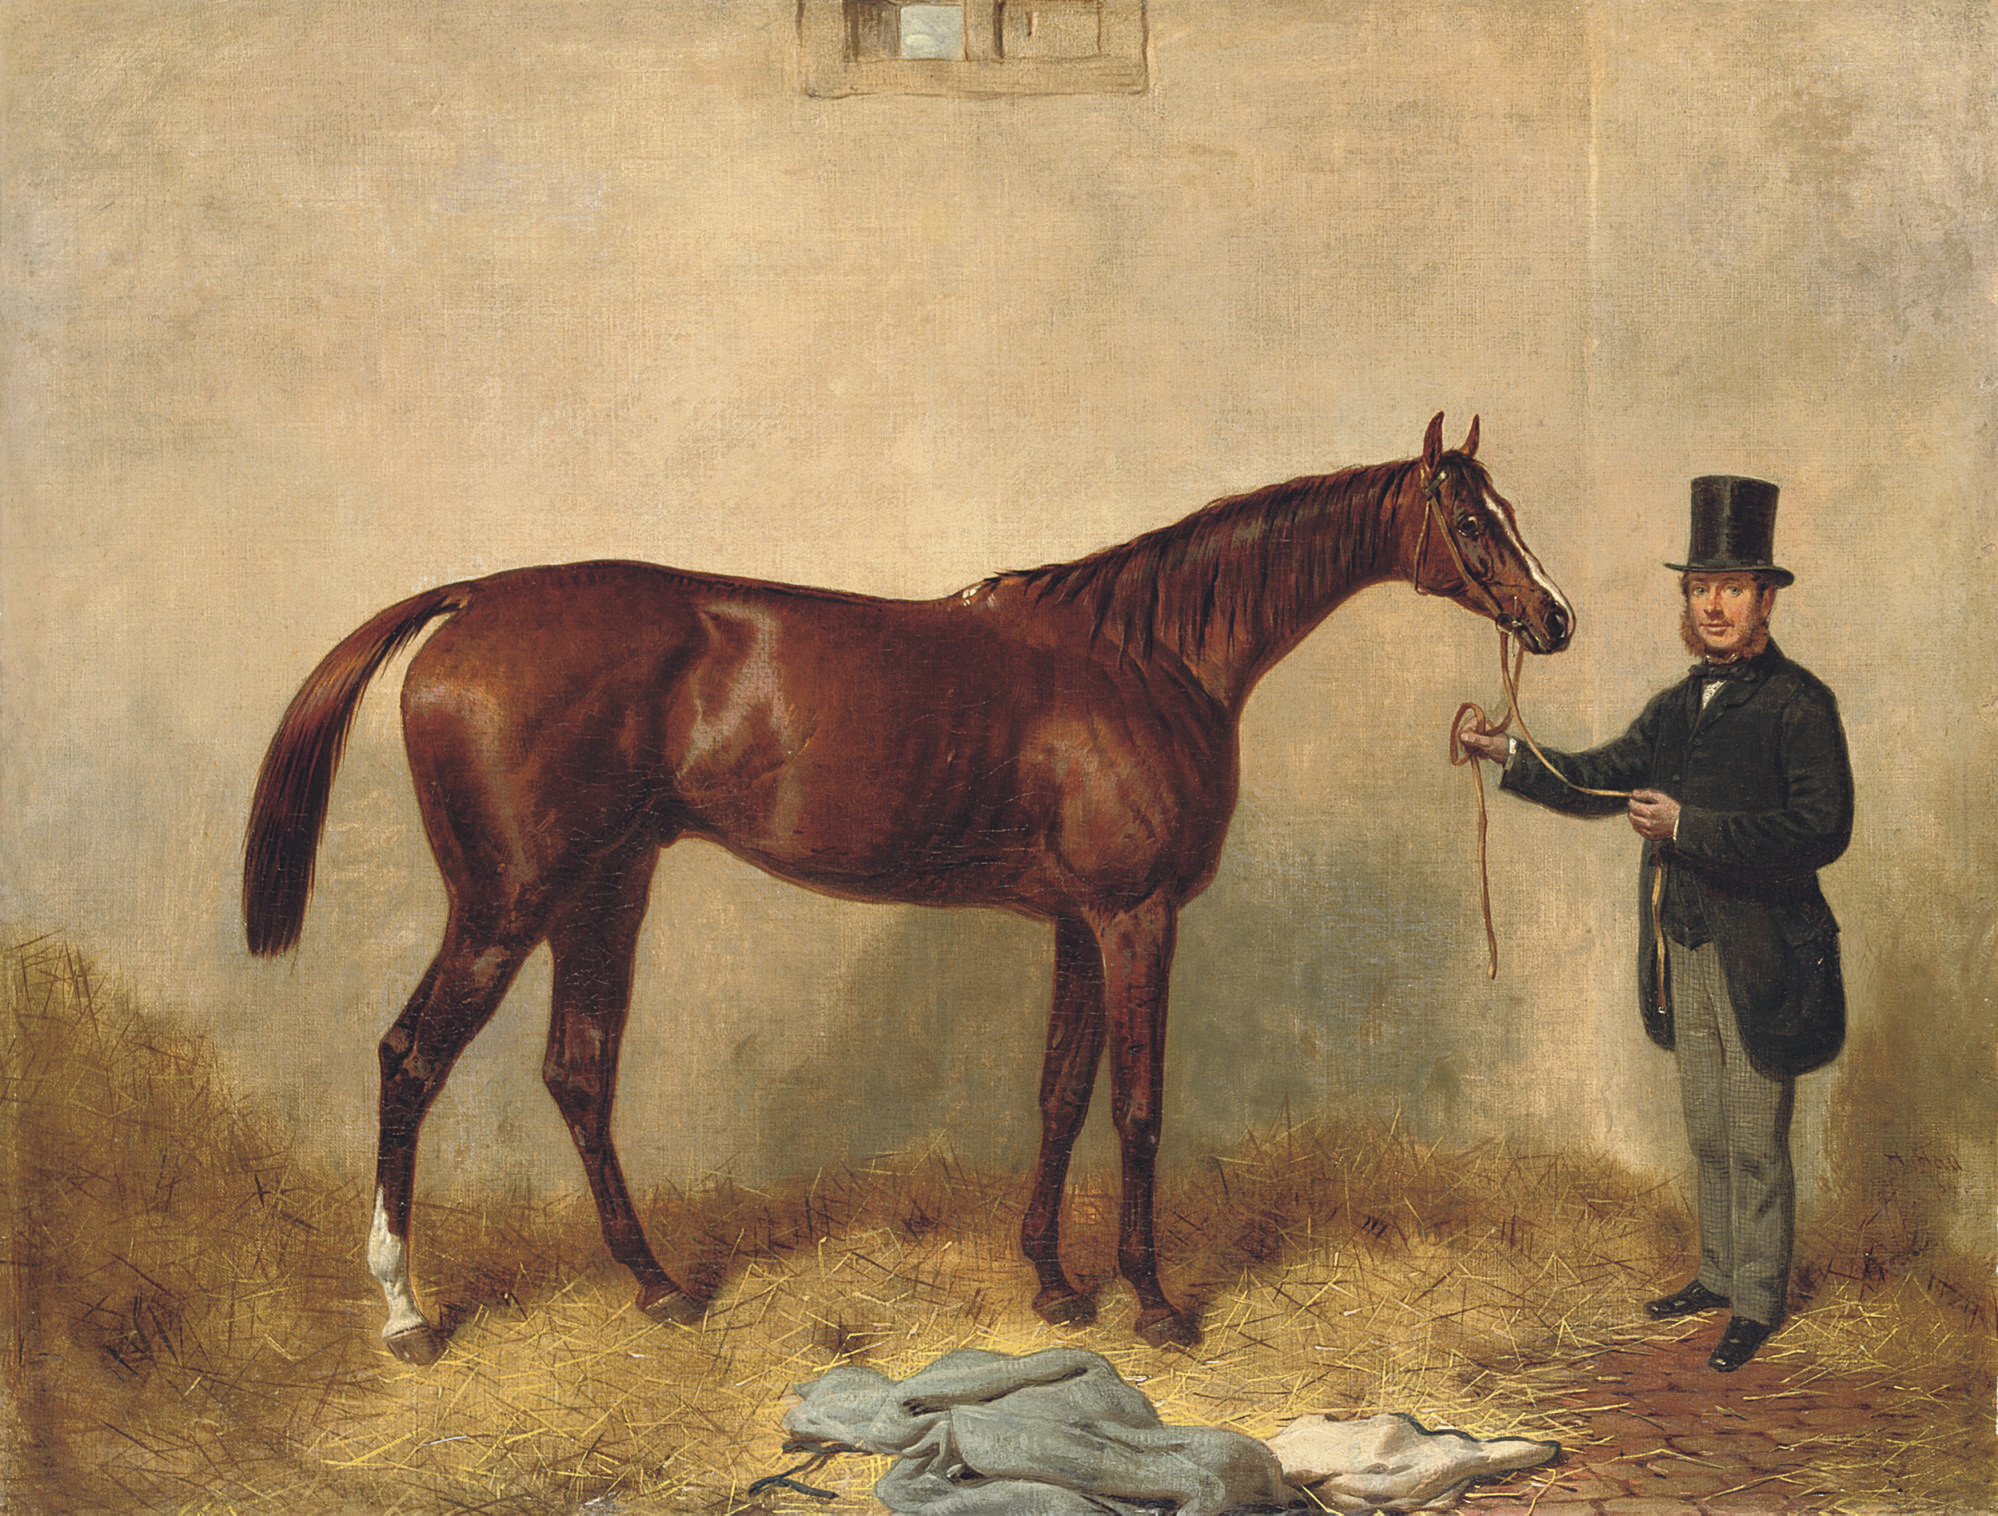 Loiterer, held by a trainer in a stable